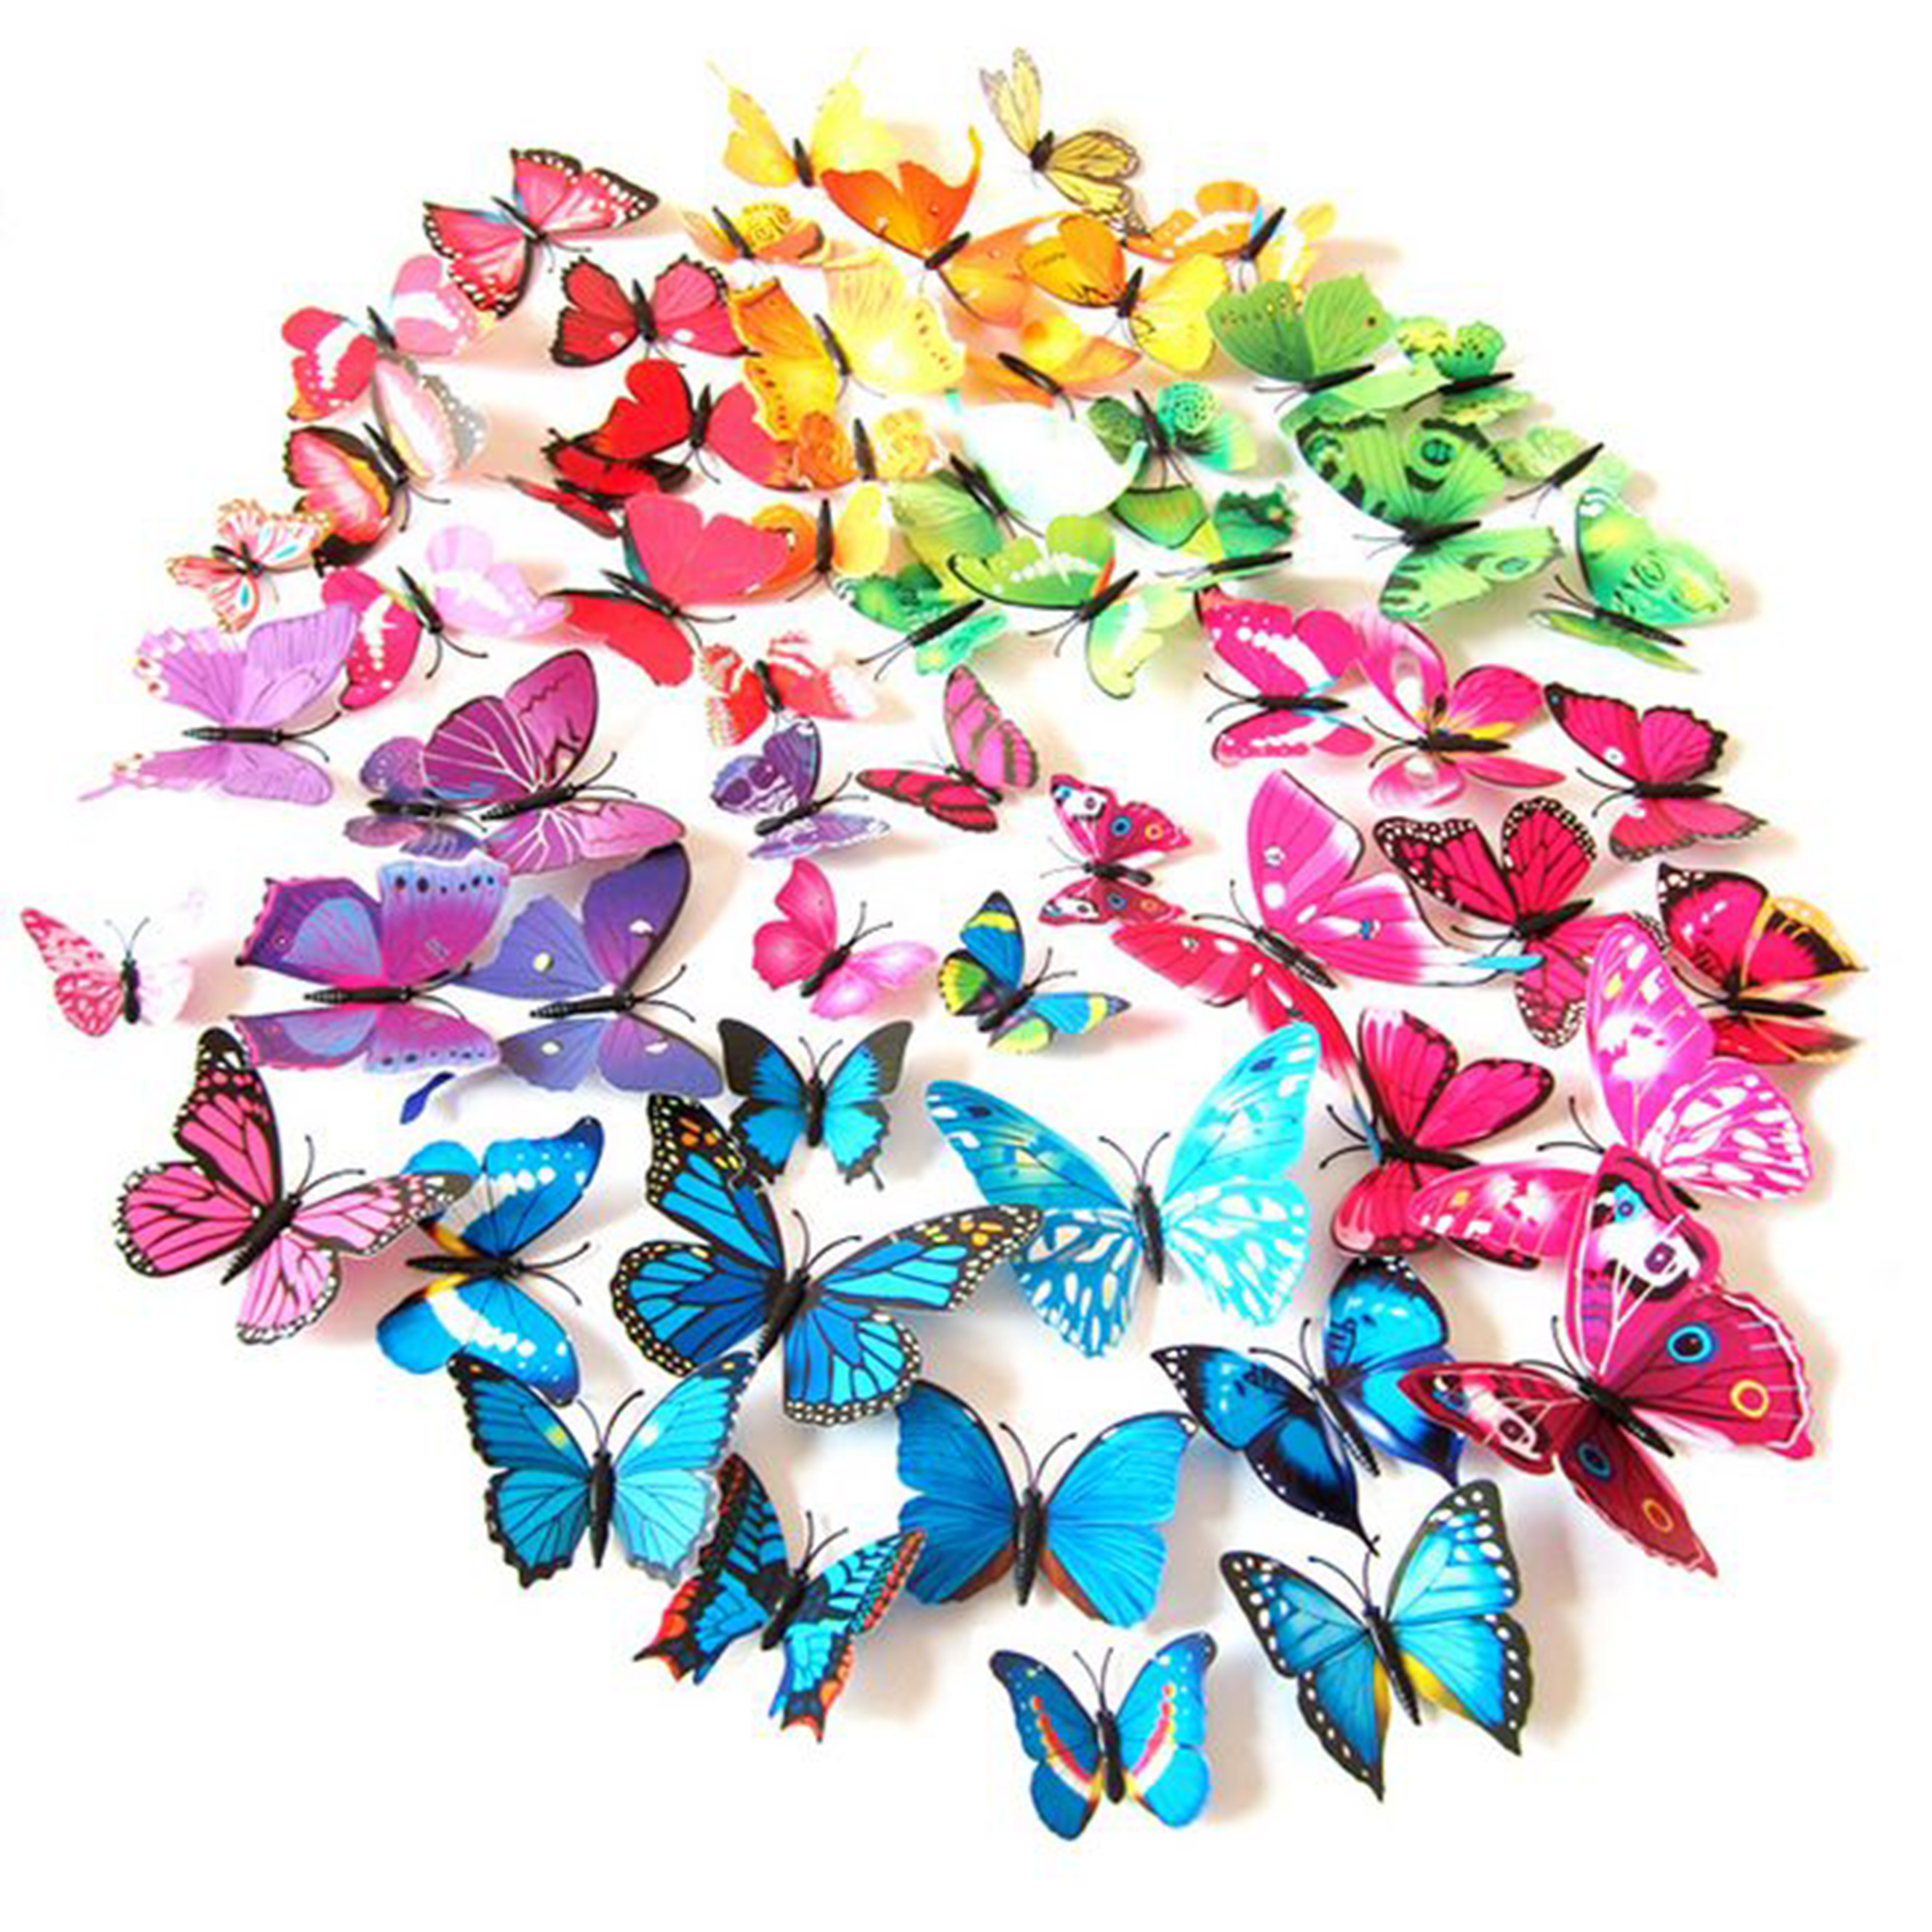 CUH 24 PCS Wall Stickers Creative 3D Butterfly Wall Stickers Art DIY Decoration Decals Wall Art Decors for Home Bedroom Living Room TV Background Wall Kitchen Fridge Window